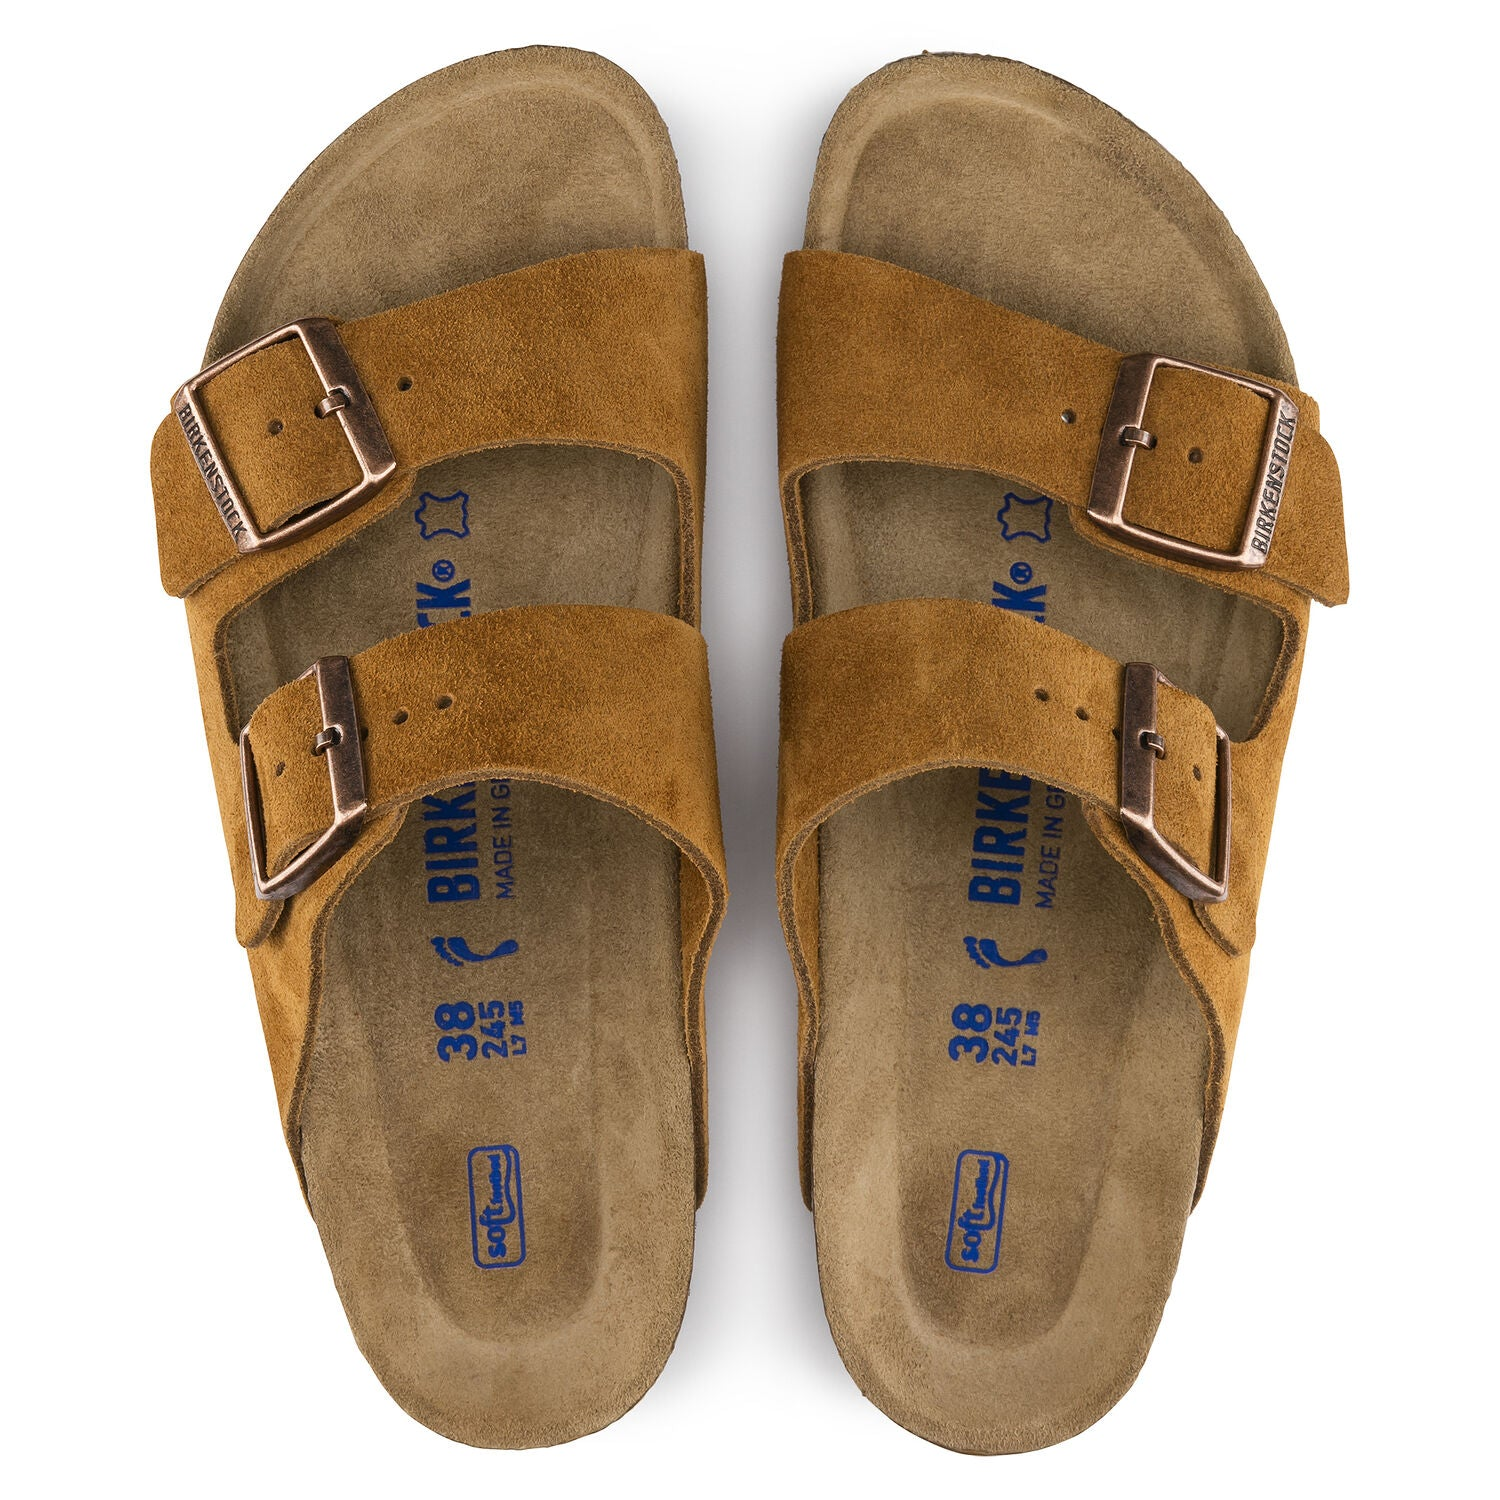 ARIZONA MINK SUEDE NARROW SOFT FOOTBED getset-footwear.myshopify.com